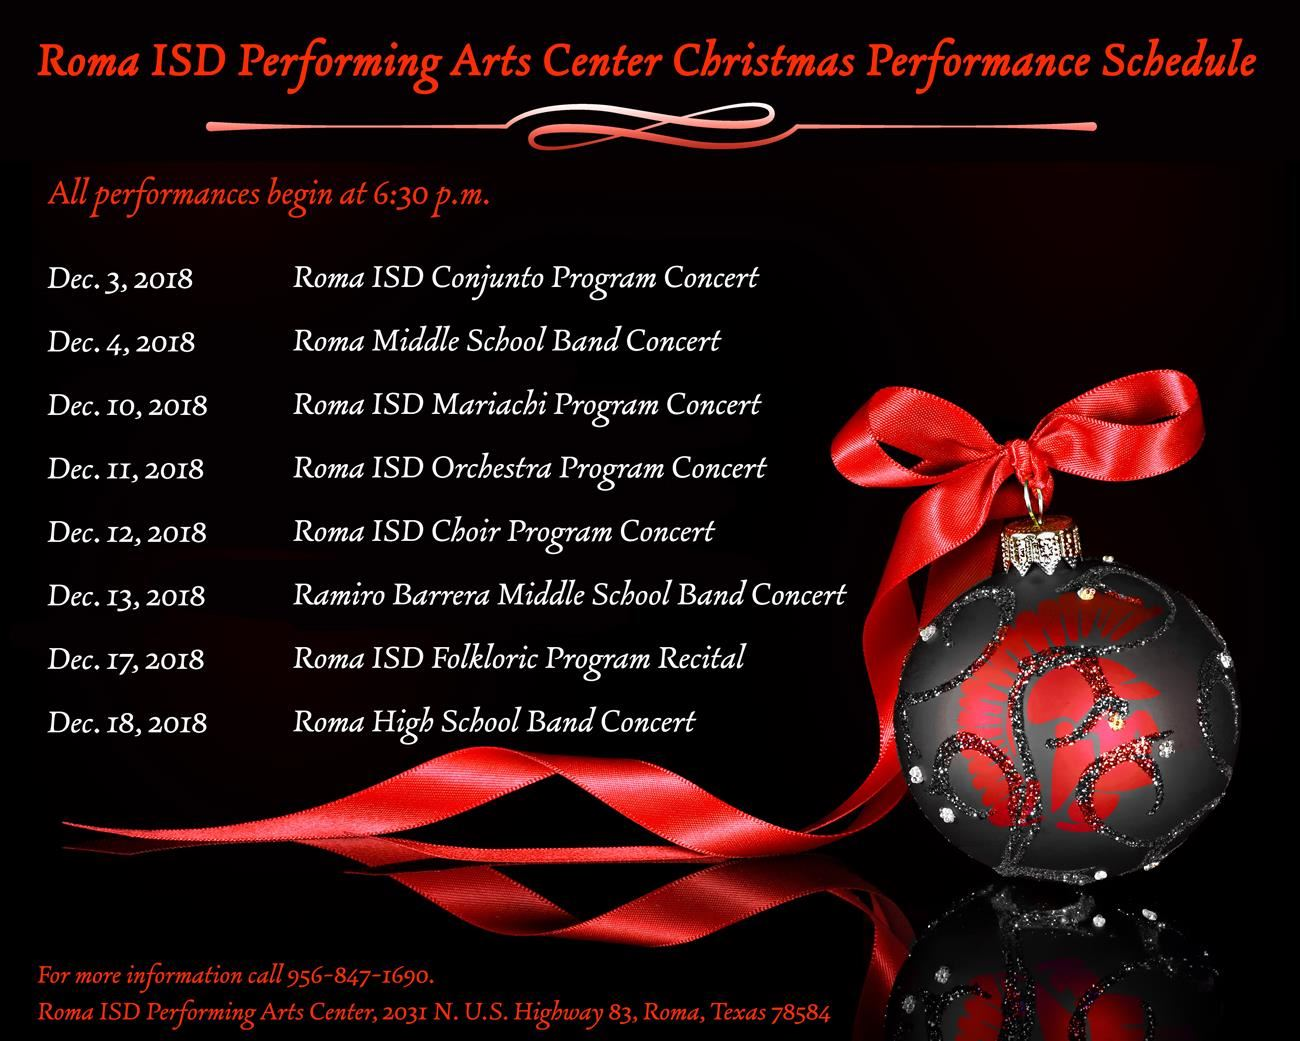 Roma ISD Performing Arts Center Christmas Performance Schedule.